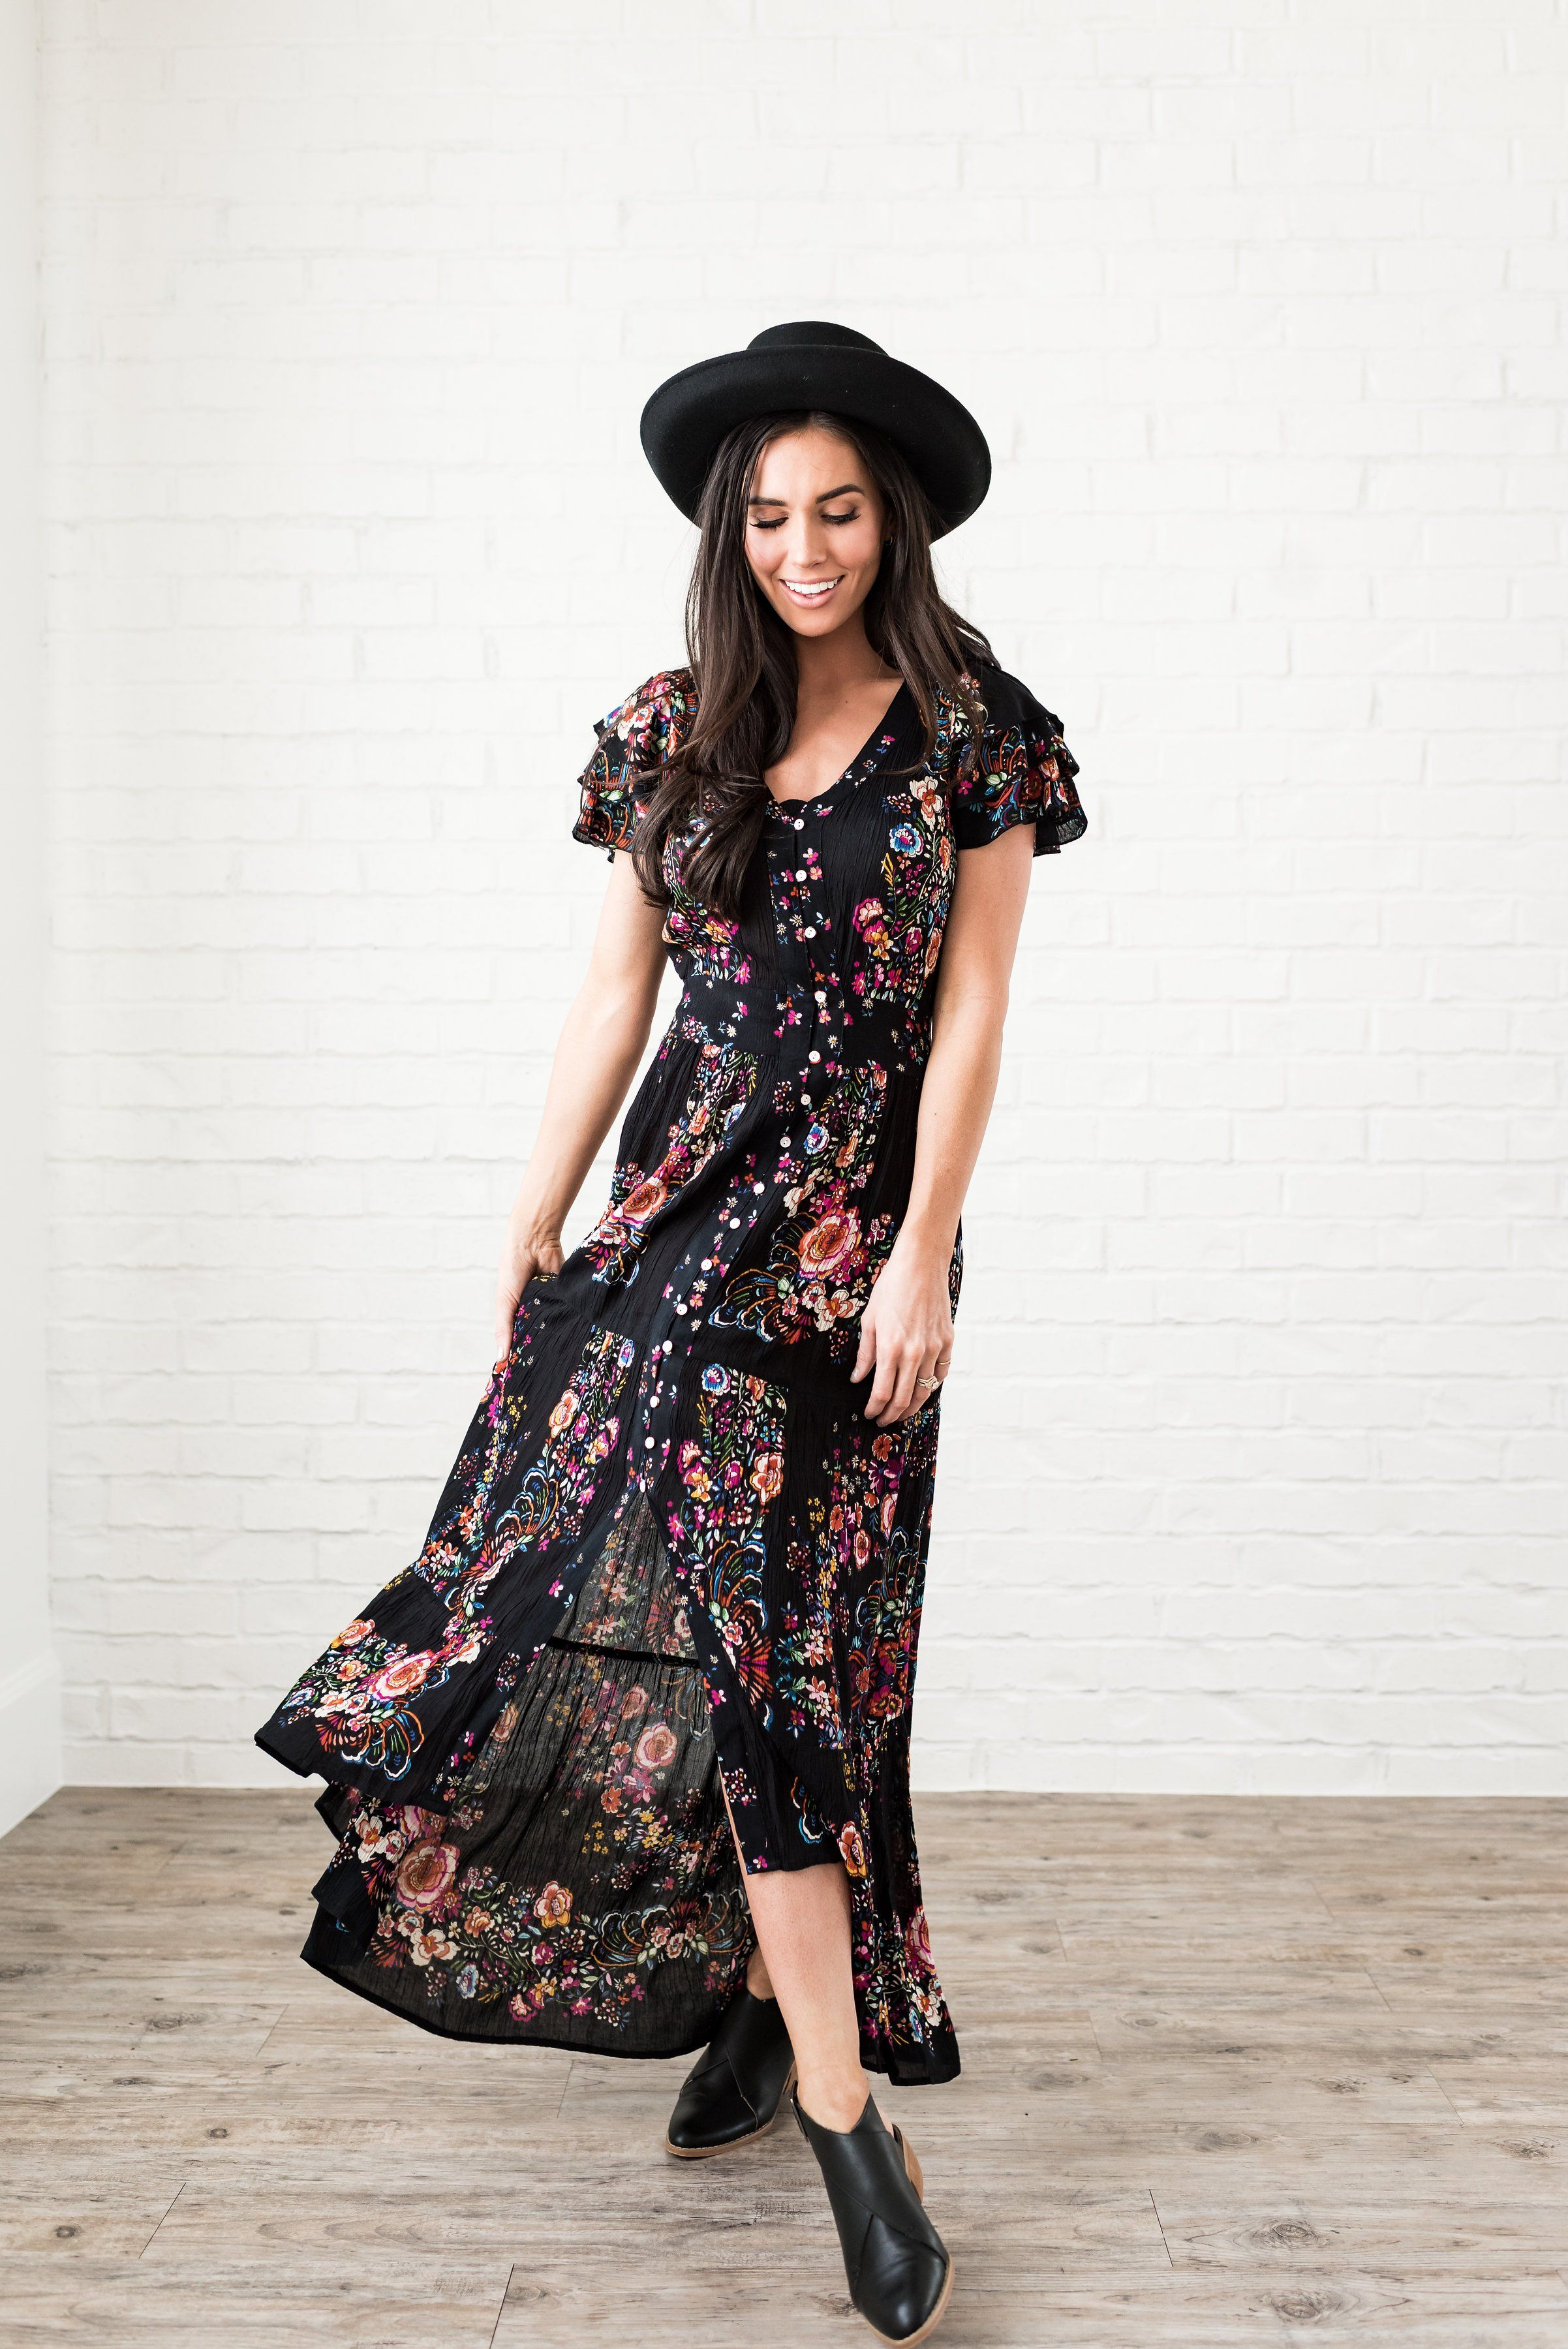 a677c809c938b Black floral maxi dress - Tiered ruffle sleeves - Functioning buttons down  front - High-low hemline - Not lined - 100% rayon - Hand wash cold Model is  5'7